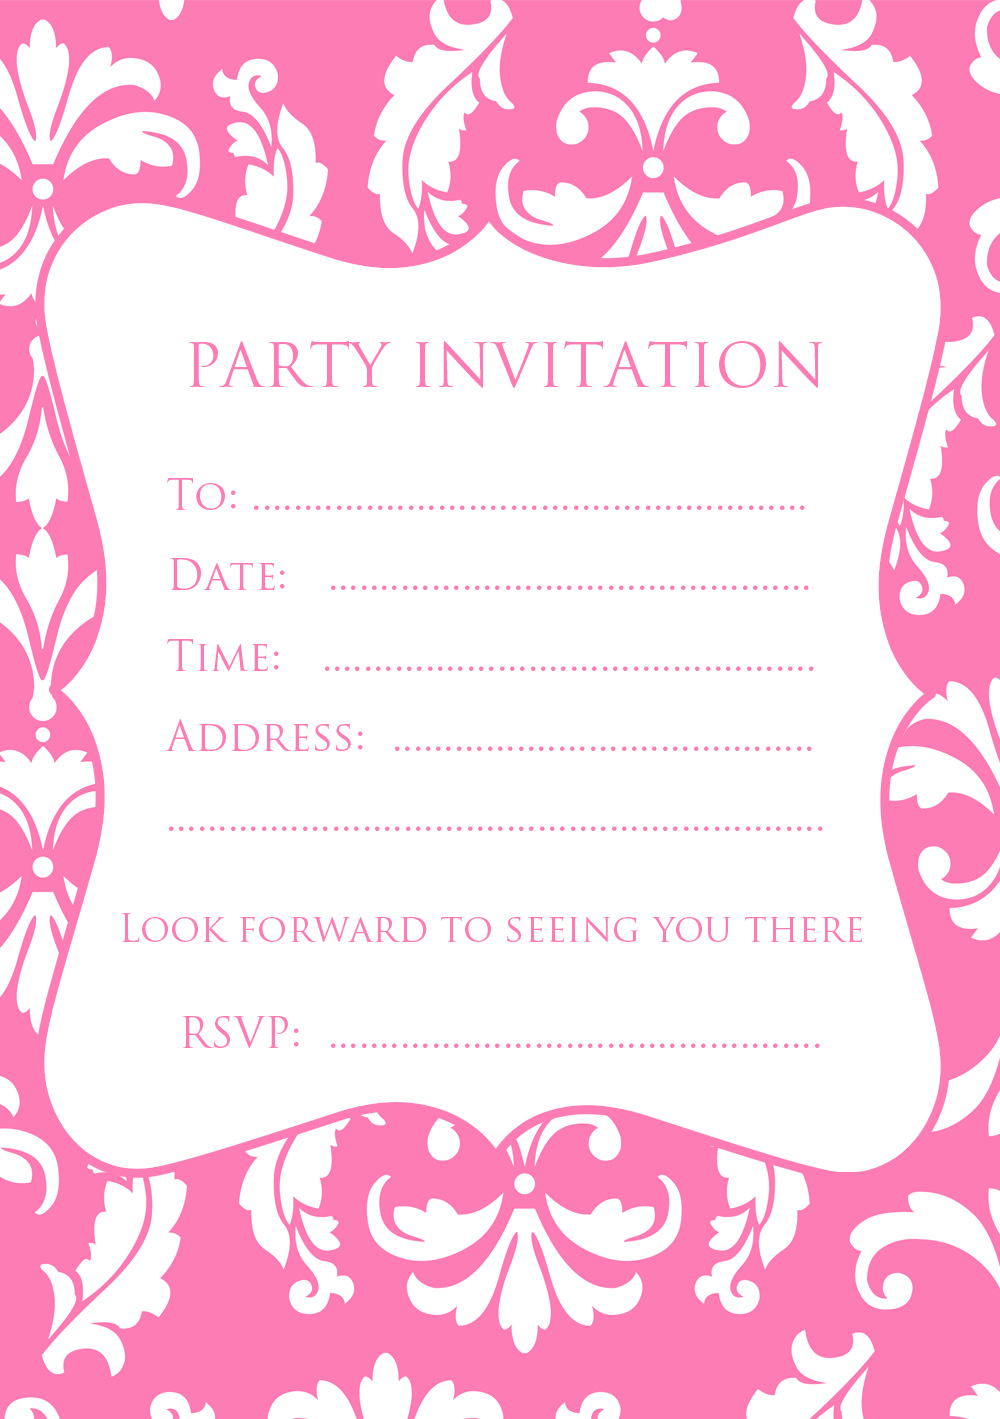 FREE Pink Damask Party Invitation | Free Party Invitations ...